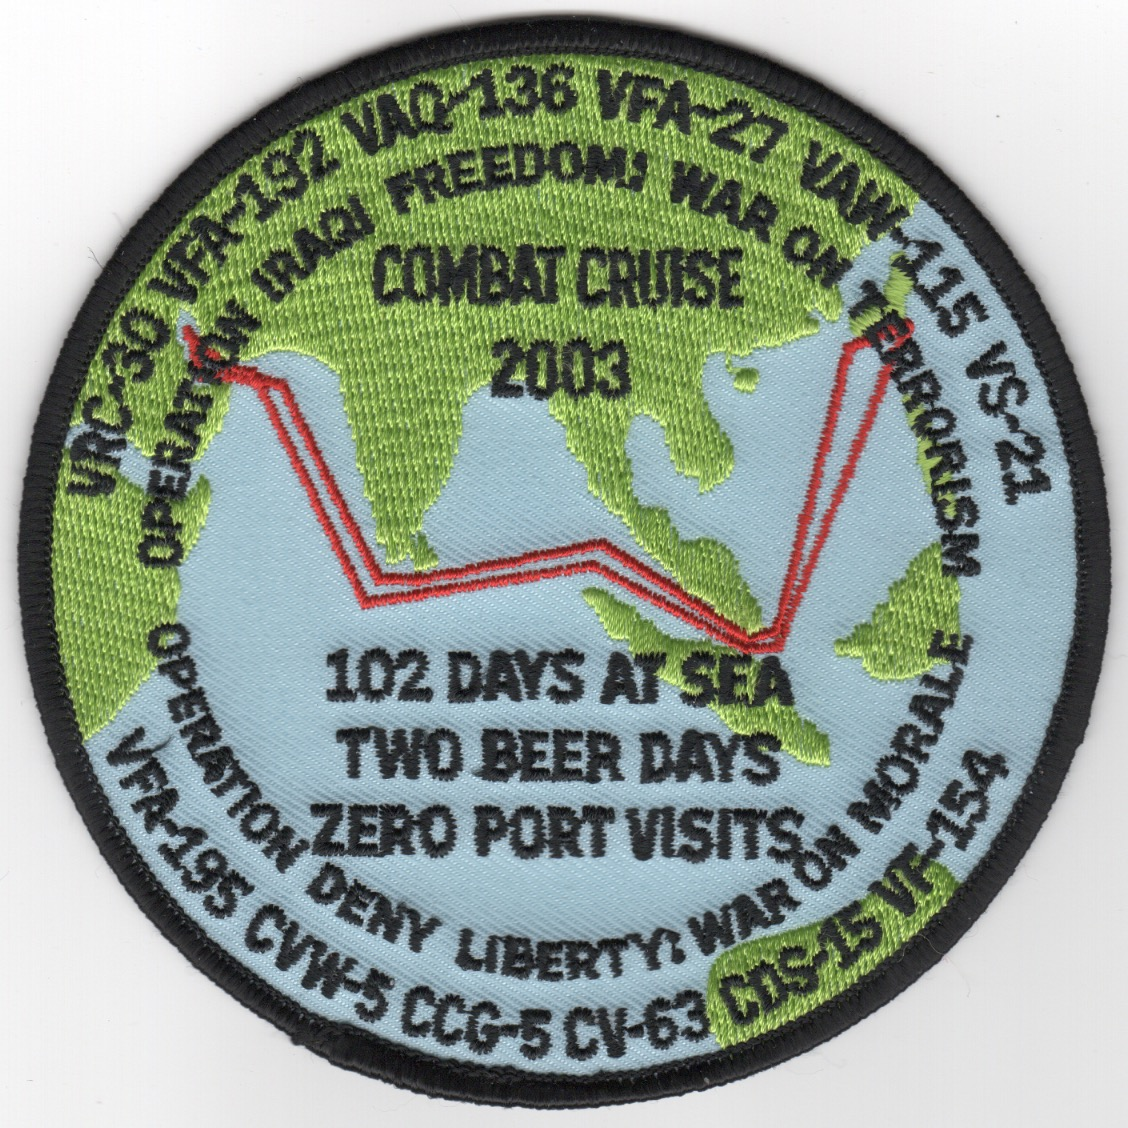 373) CV-63/CVW-5 2003 'COMBAT CRUISE' Patch